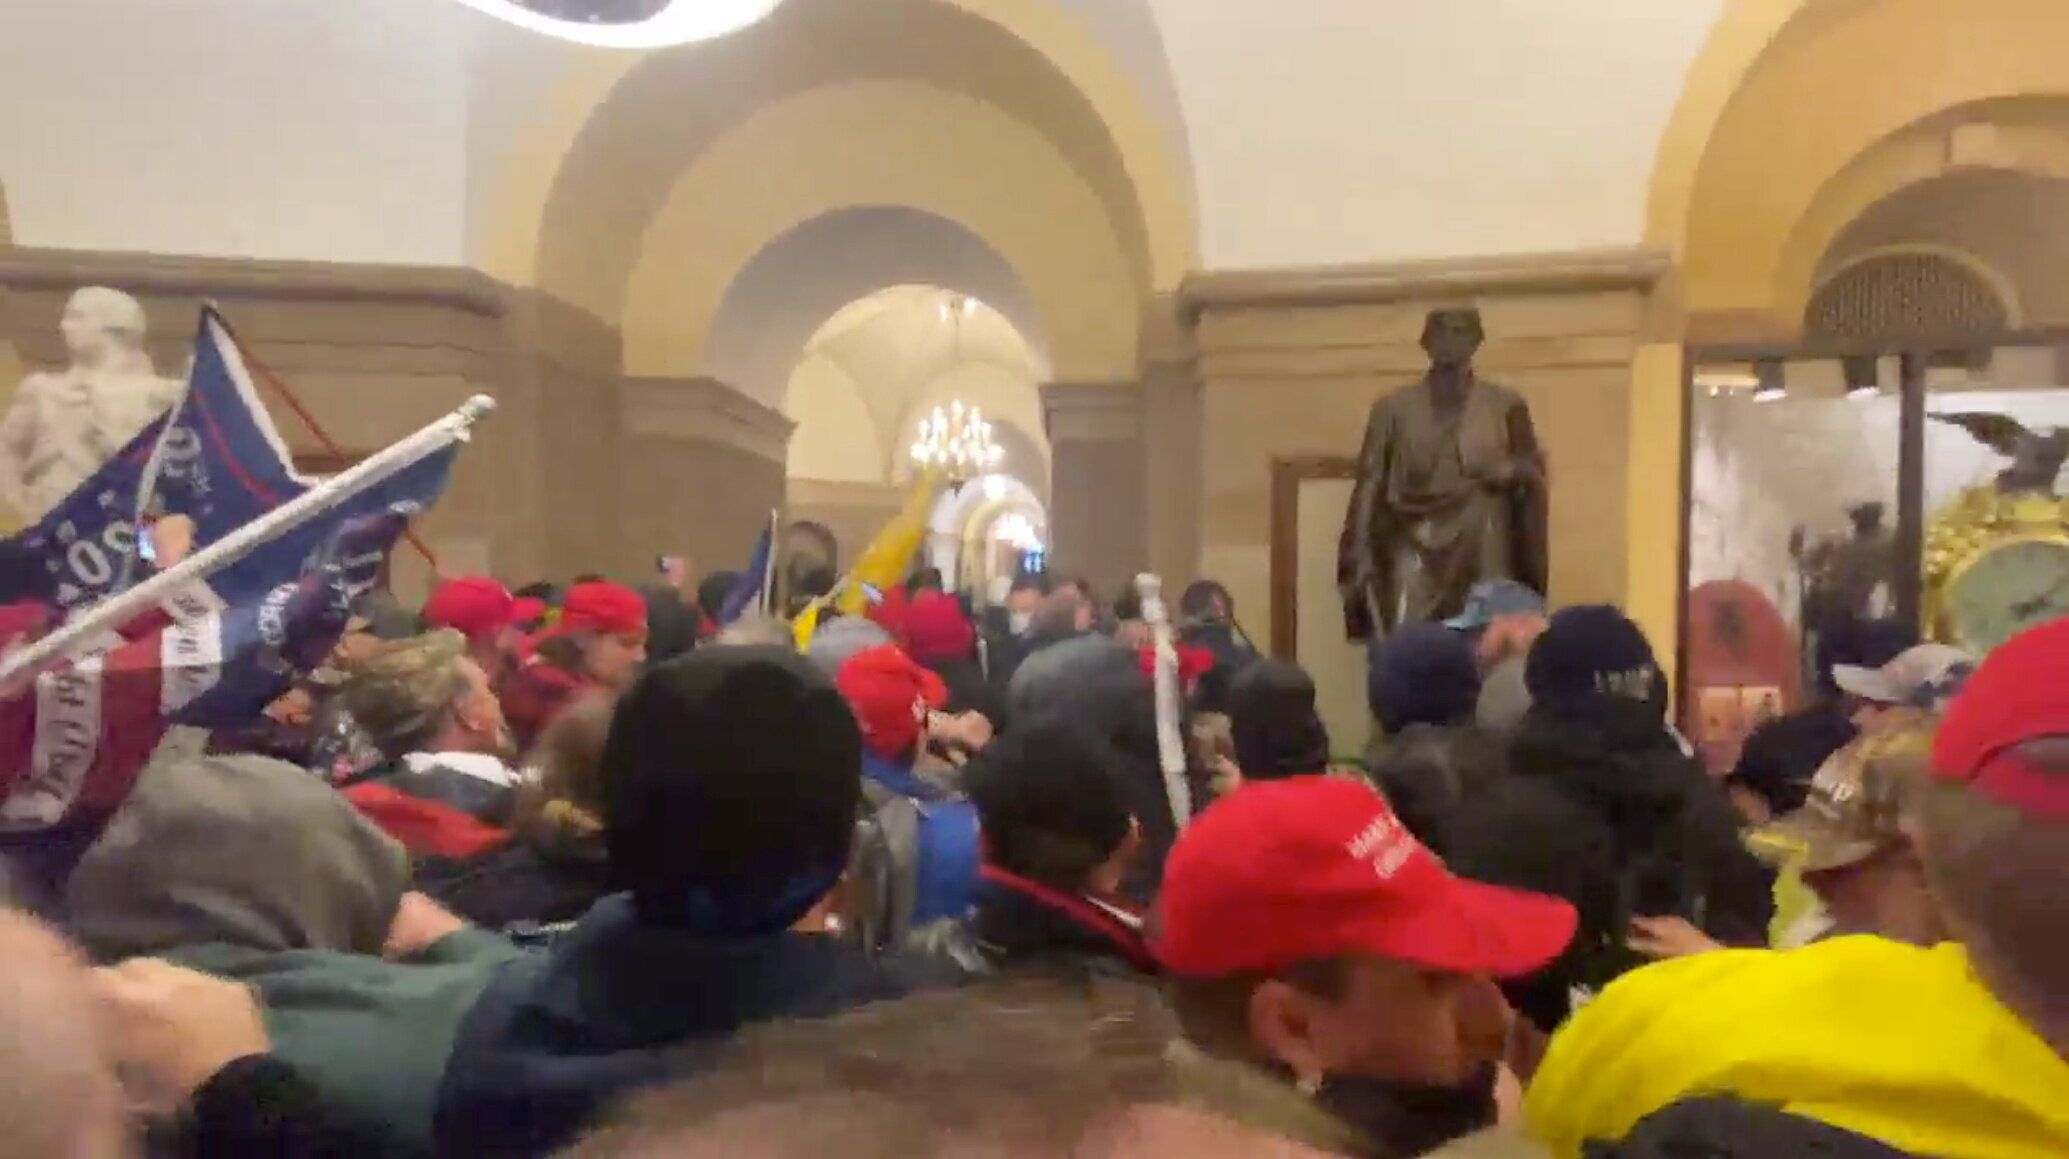 Supporters of President Donald Trump storm the Capitol building in Washington, U.S., January 6, 2021 in this screen grab obta